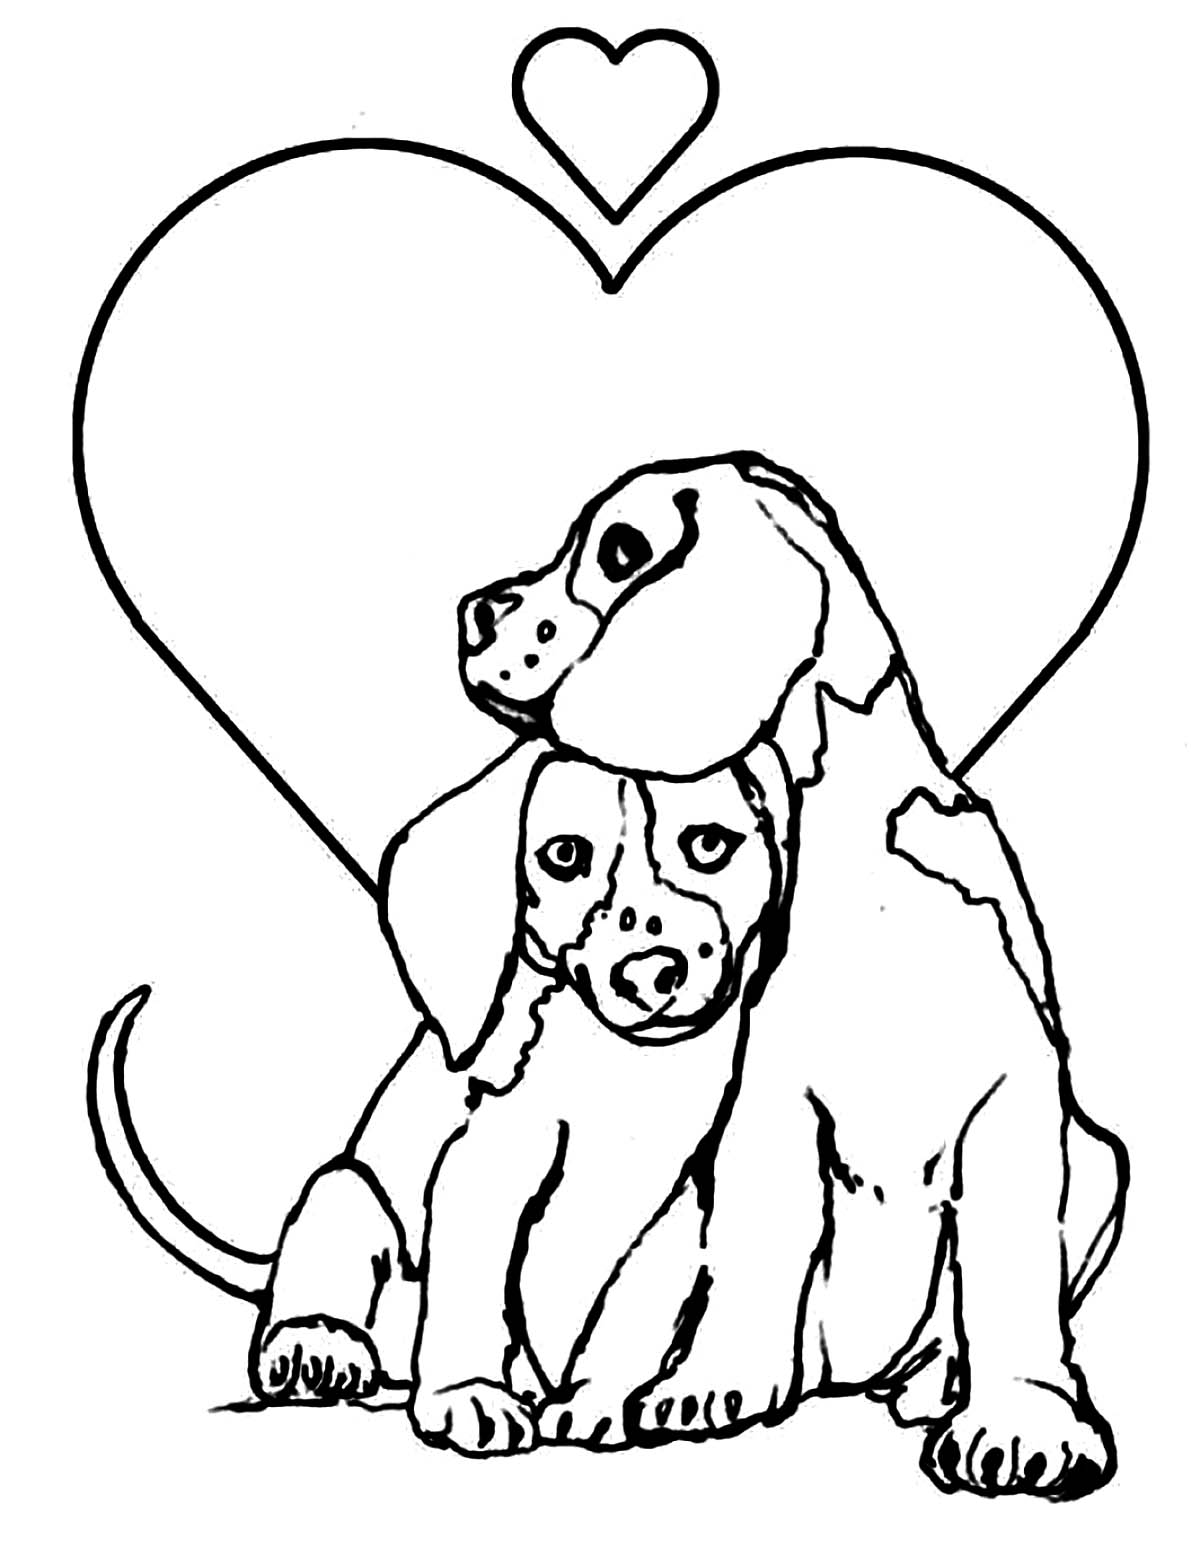 kids dog coloring pages puppy dog coloring pages from the thousands of images kids coloring dog pages